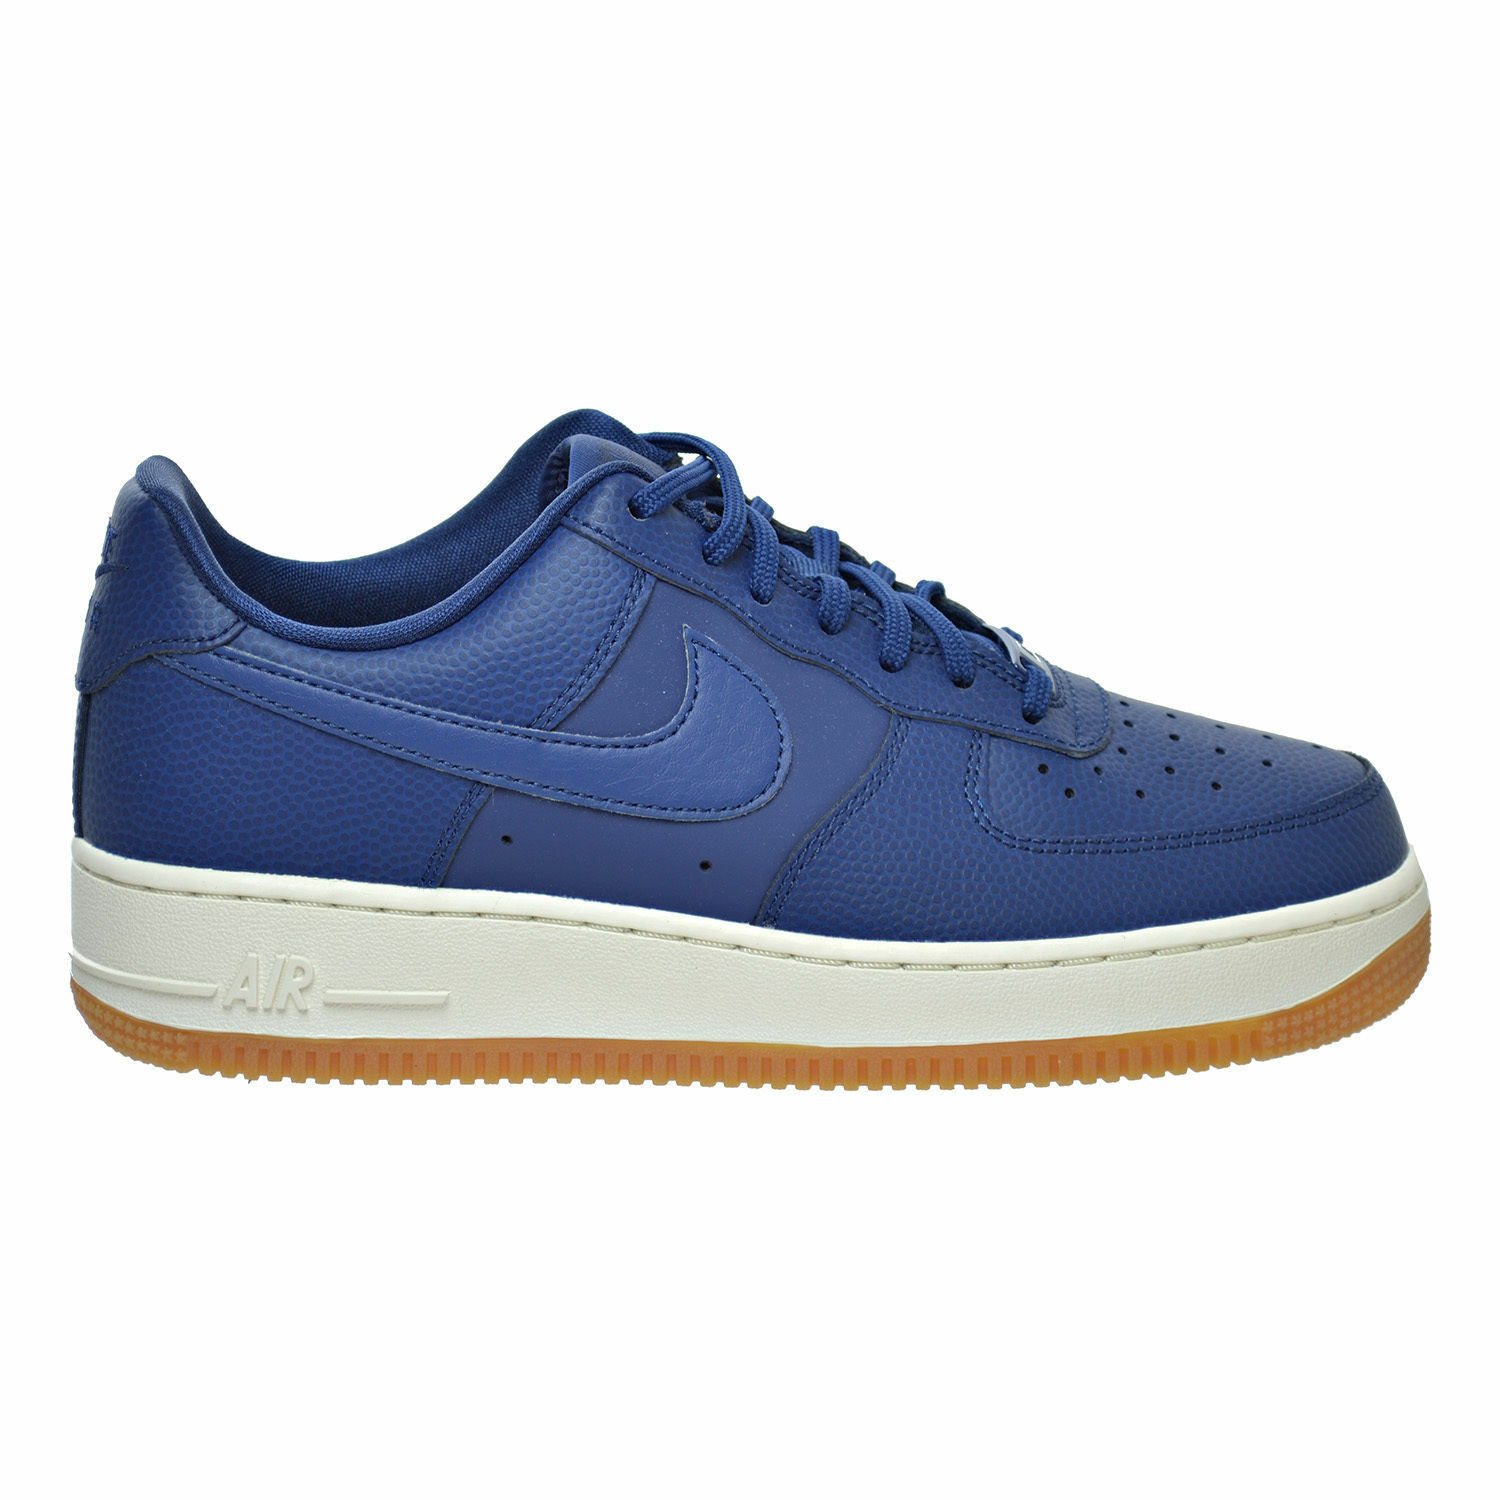 NIKE WOMEN'S SEASONAL AIR FORCE 1 '07 SEASONAL WOMEN'S SHOES coastal bue 818594 401 64a3e5